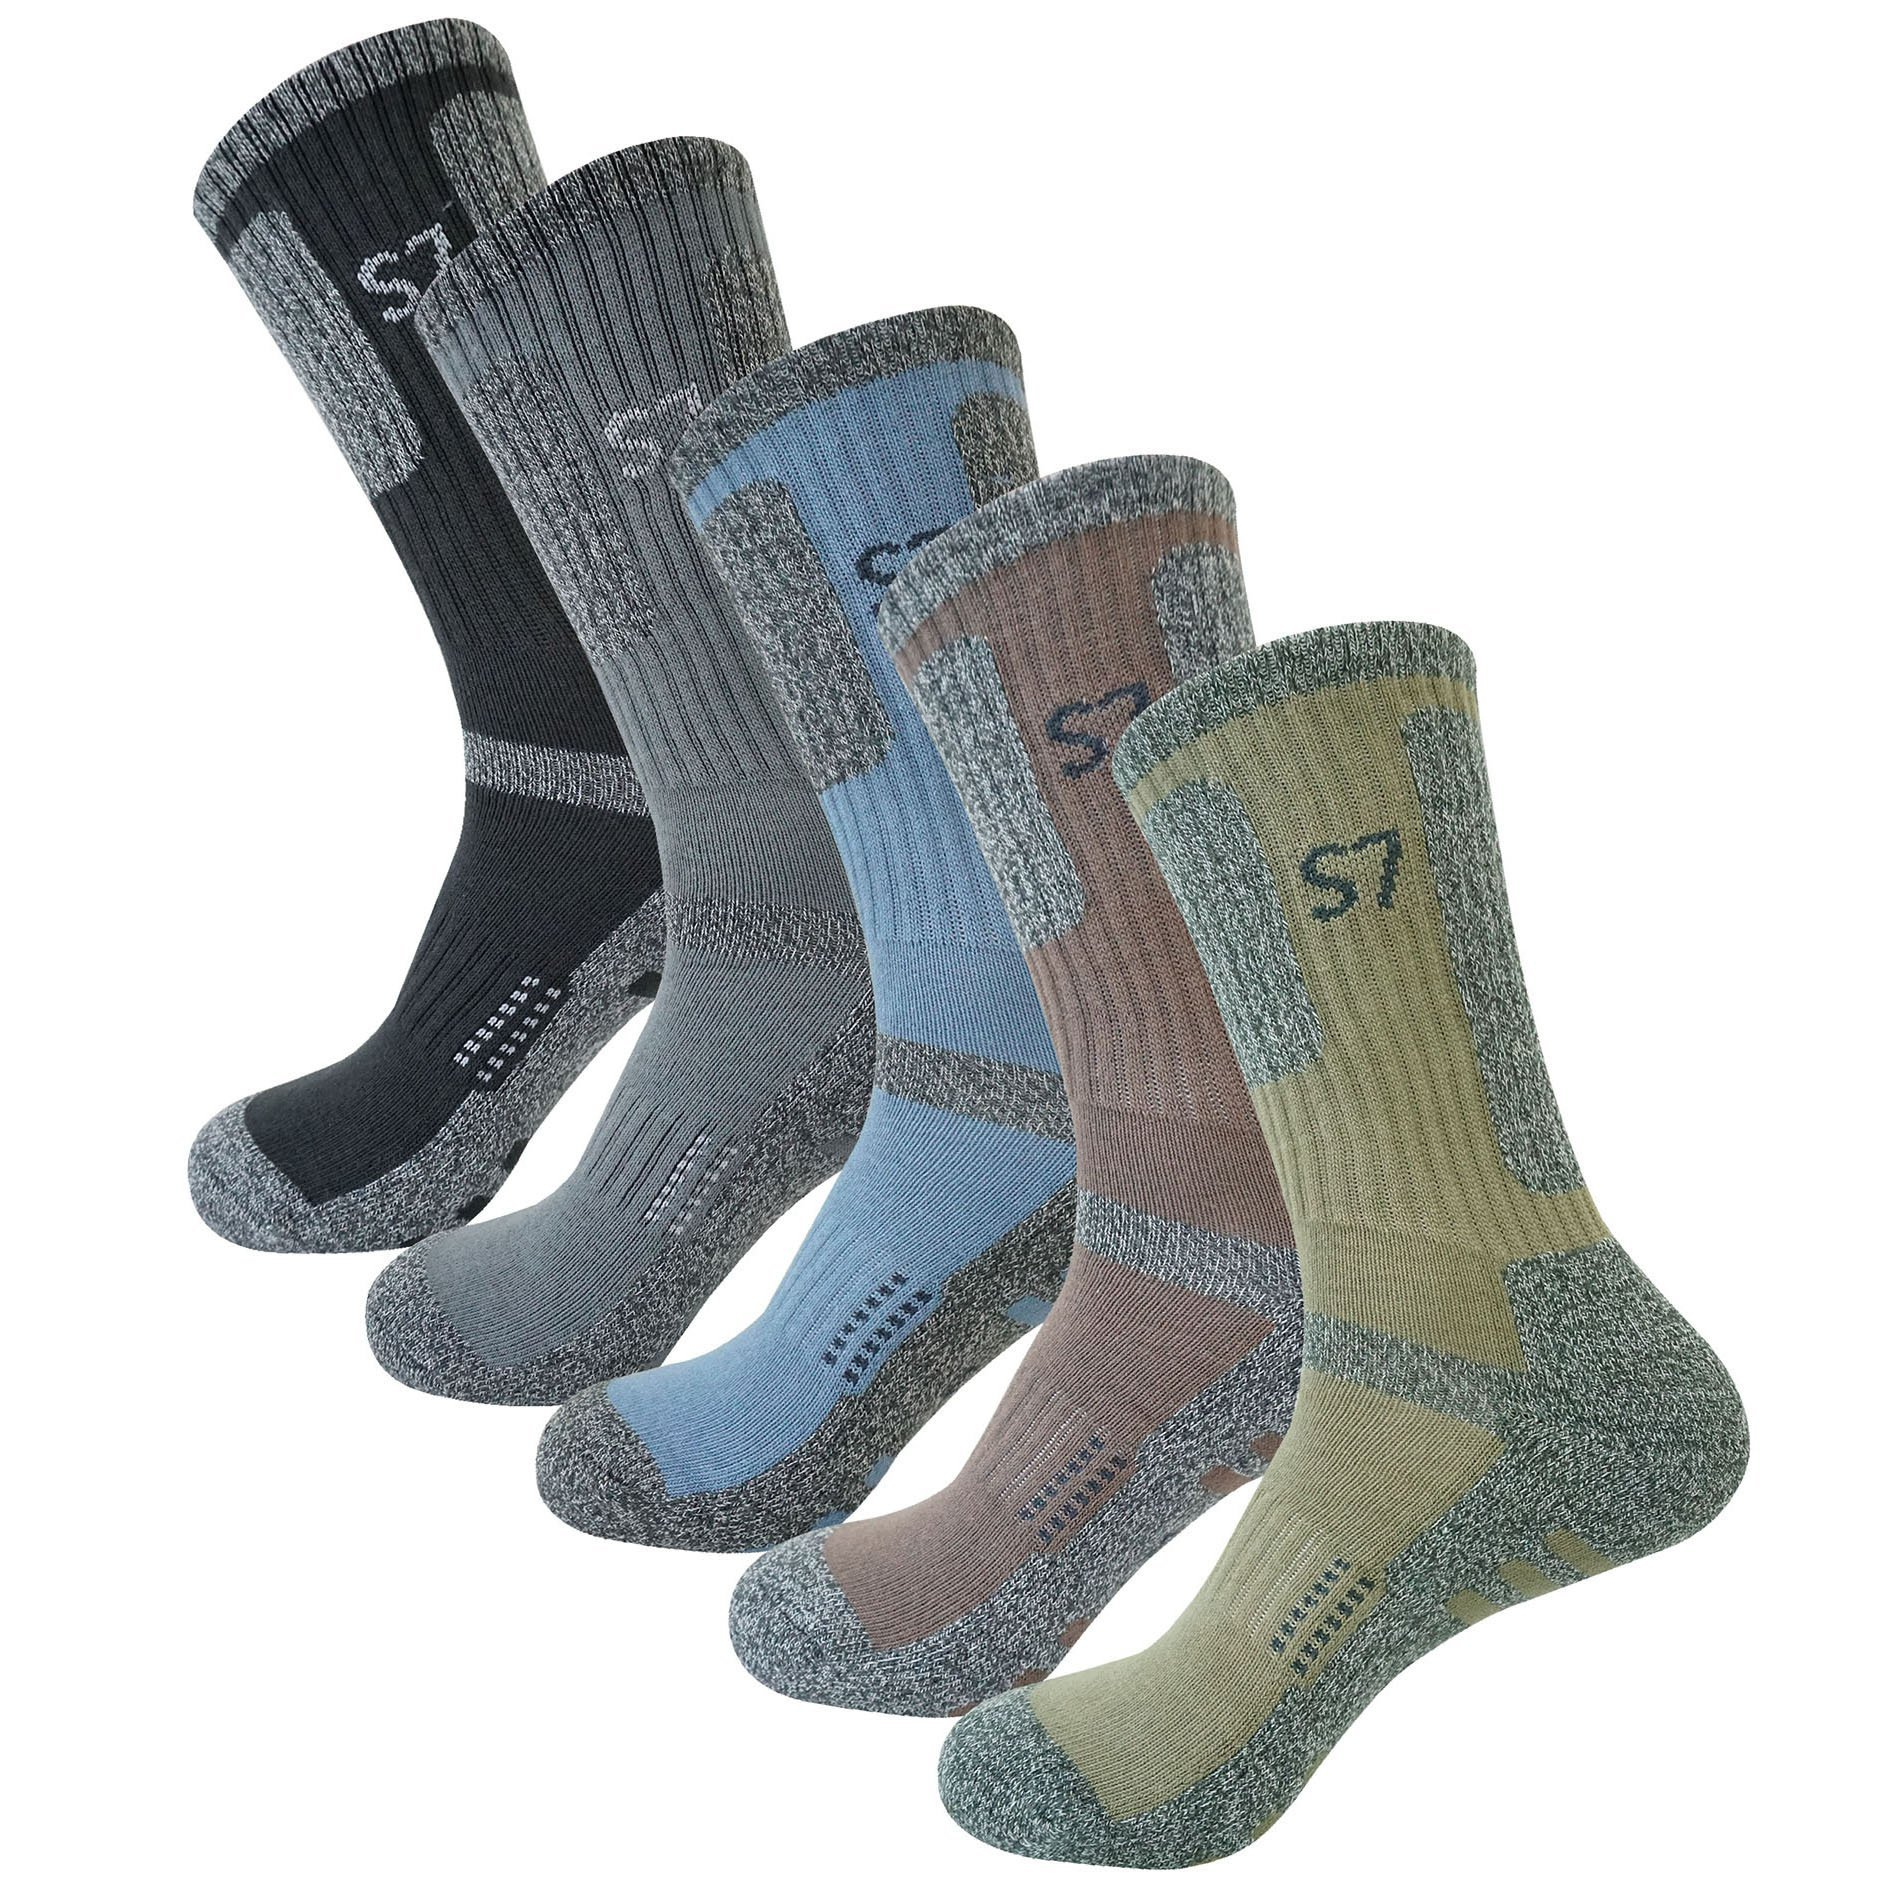 SEOULSTORY7 5Pack Men's Climbing DryCool Cushion Hiking/Performance Crew Socks 5Color XL by SEOULSTORY7